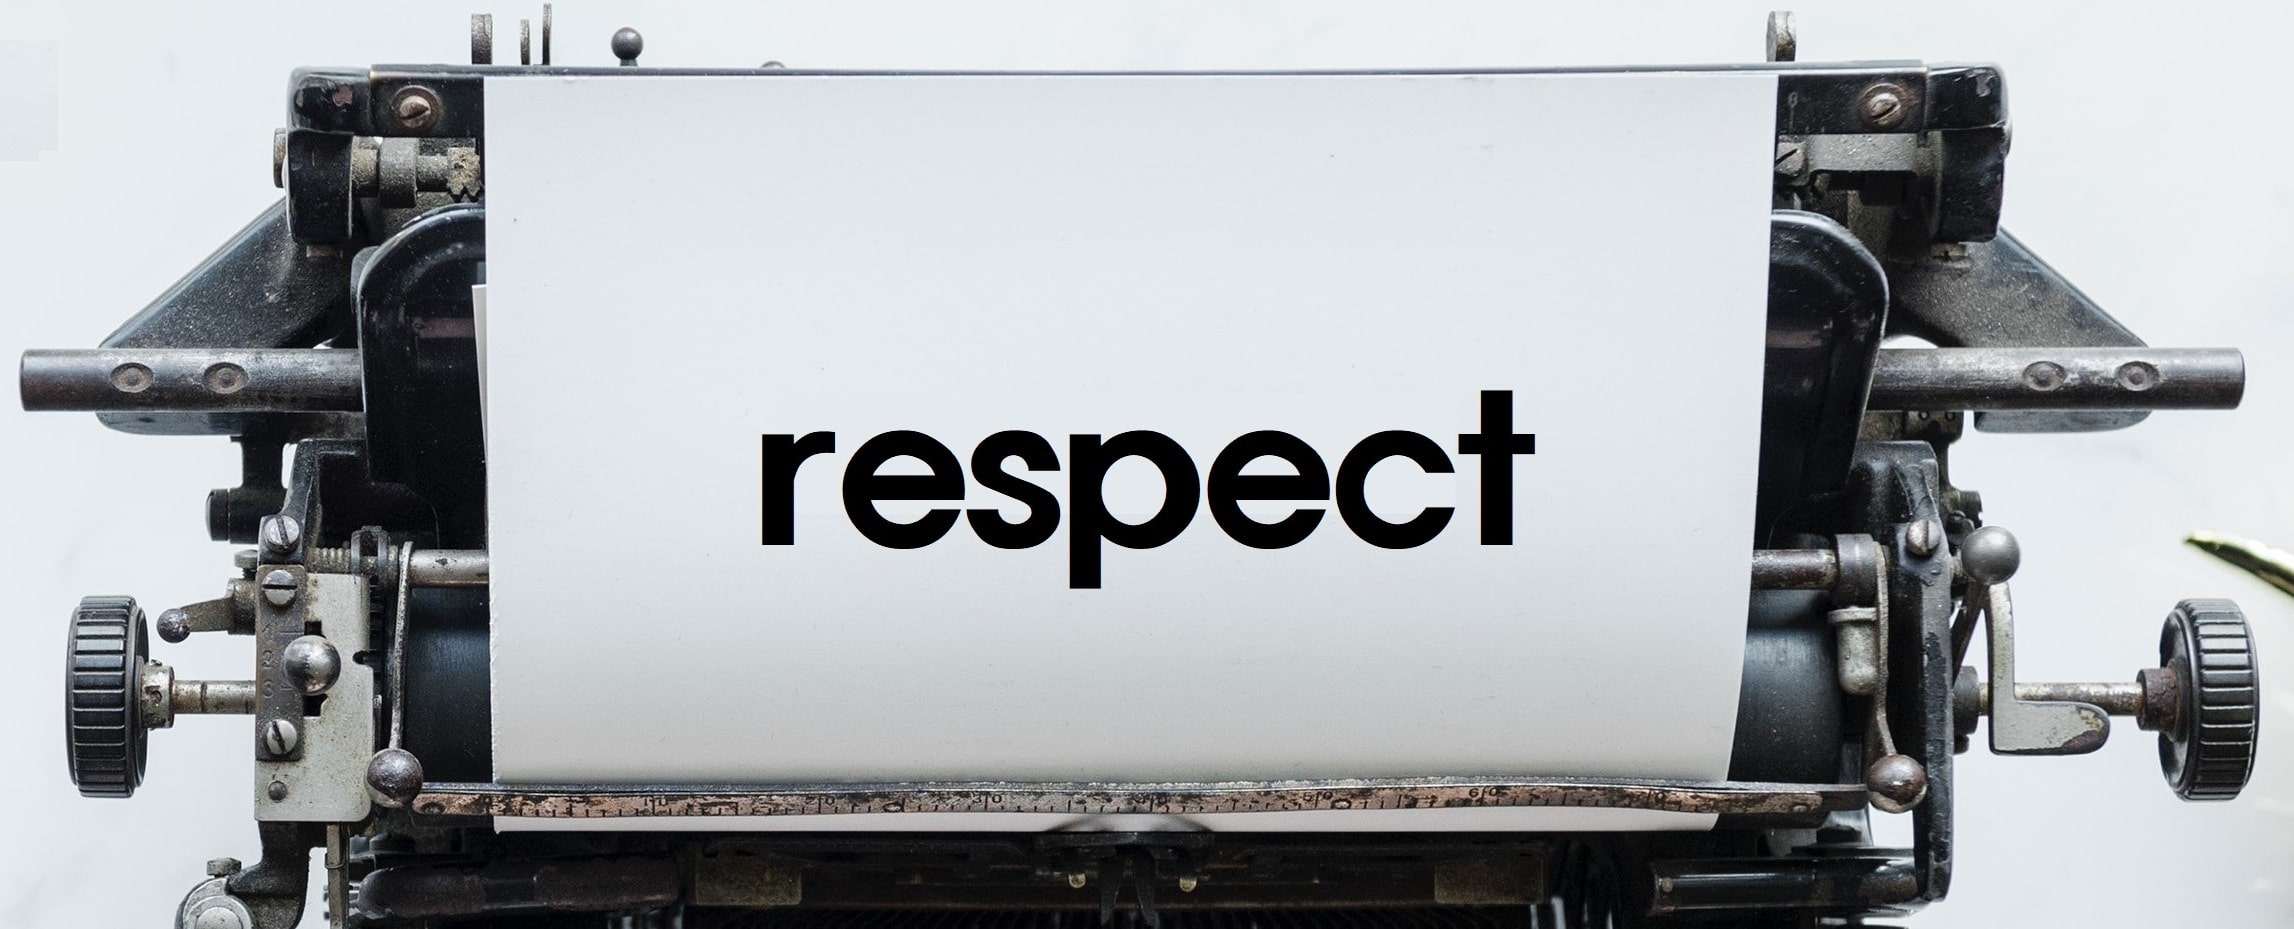 Respect – a foundational value